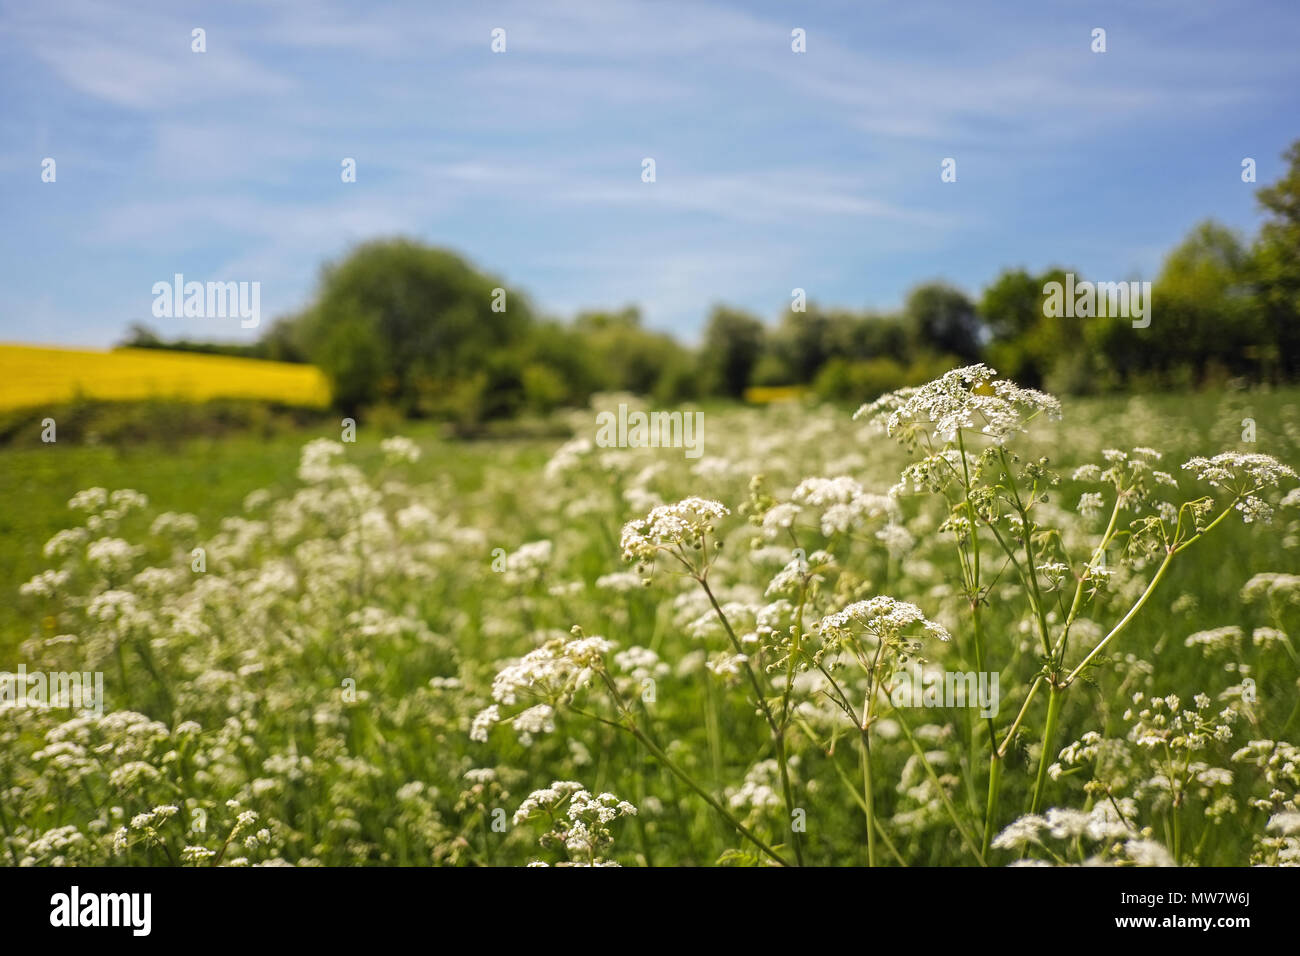 Wild cow parsley flowering plant - Stock Image